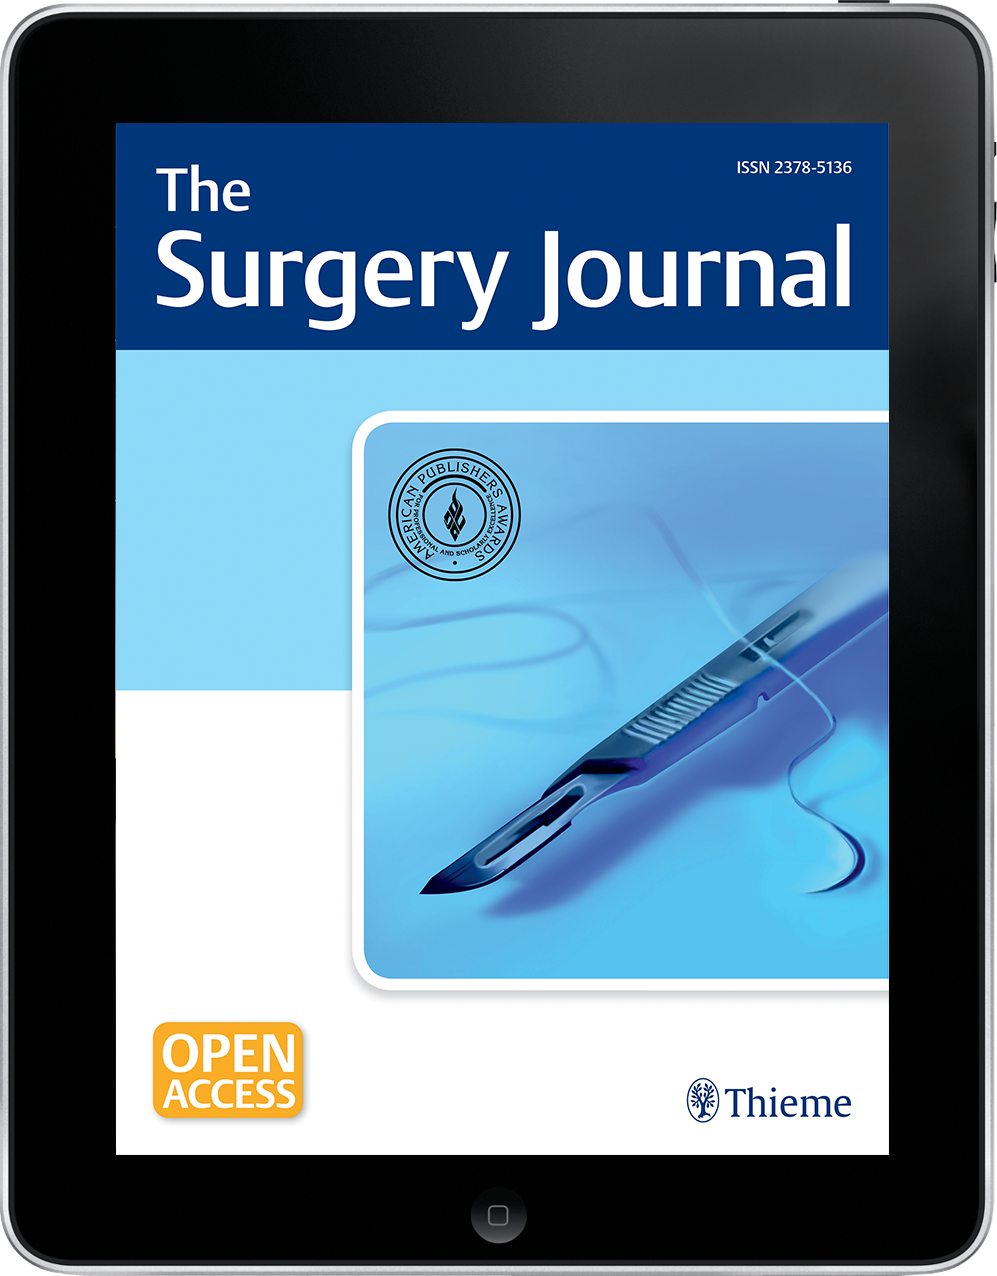 image The Surgery Journal on Device